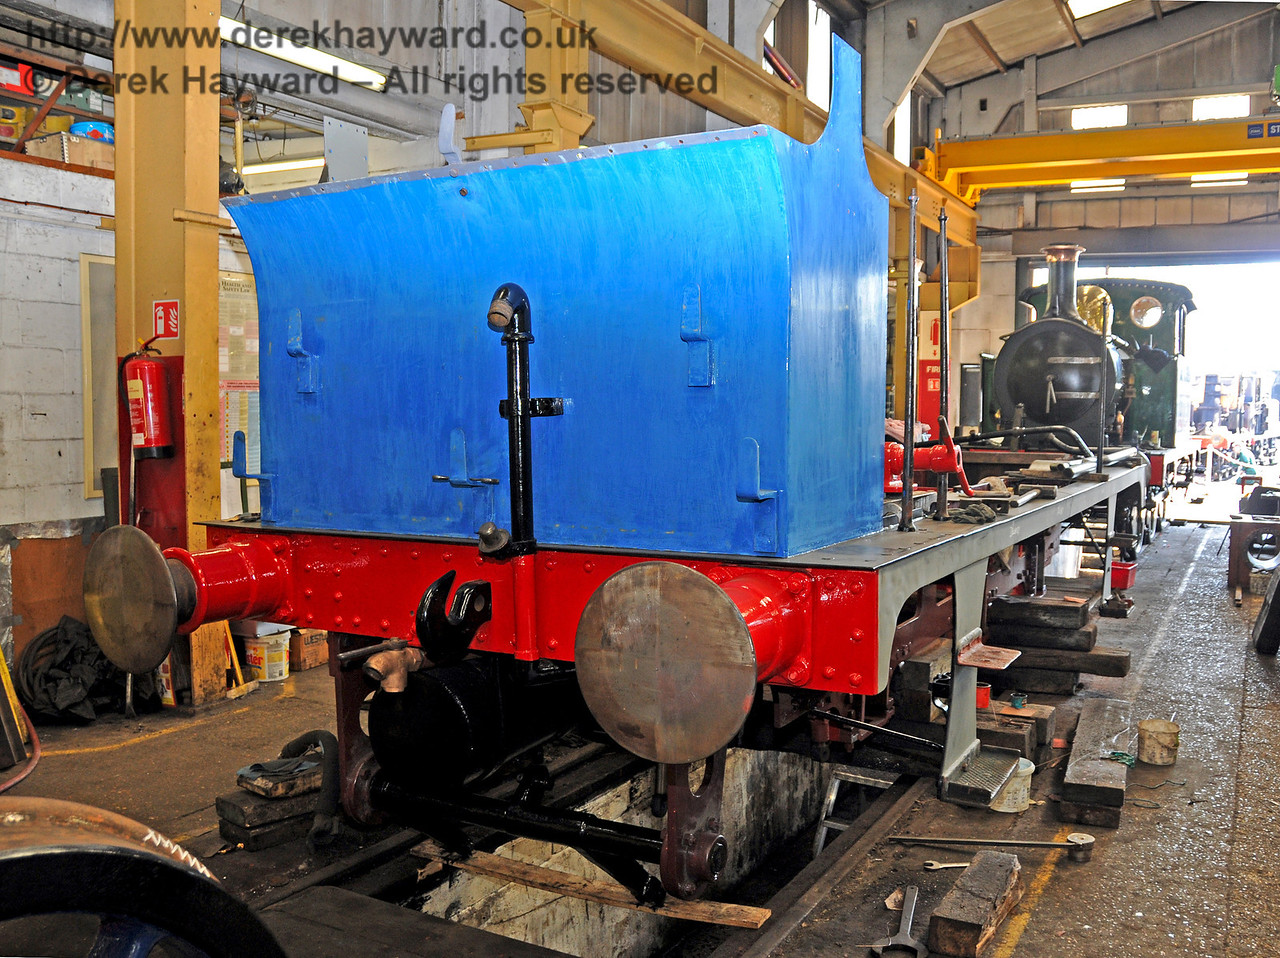 The rear offside of 323 Bluebell ready for some final coats of blue paint. Sheffield Park Workshops 17.04.2010  1908